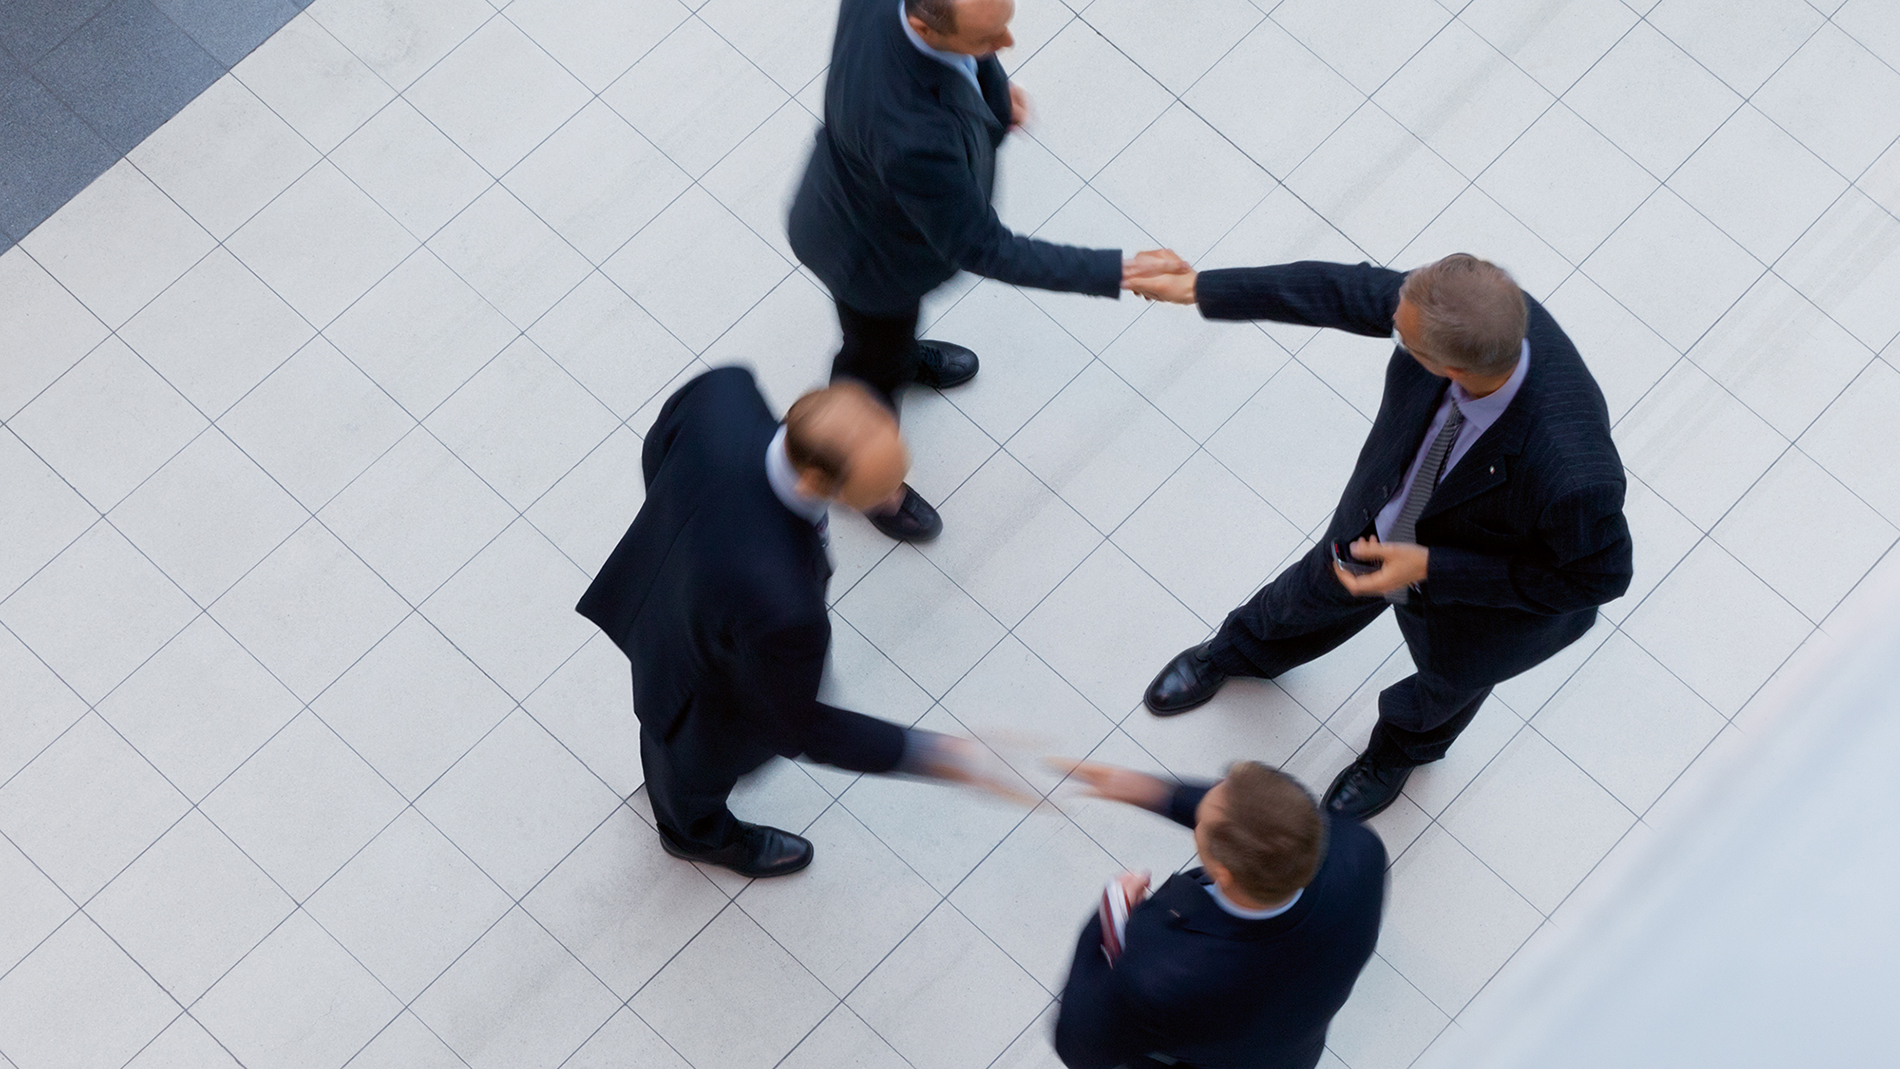 4 businessmen greet each other with hand shakes